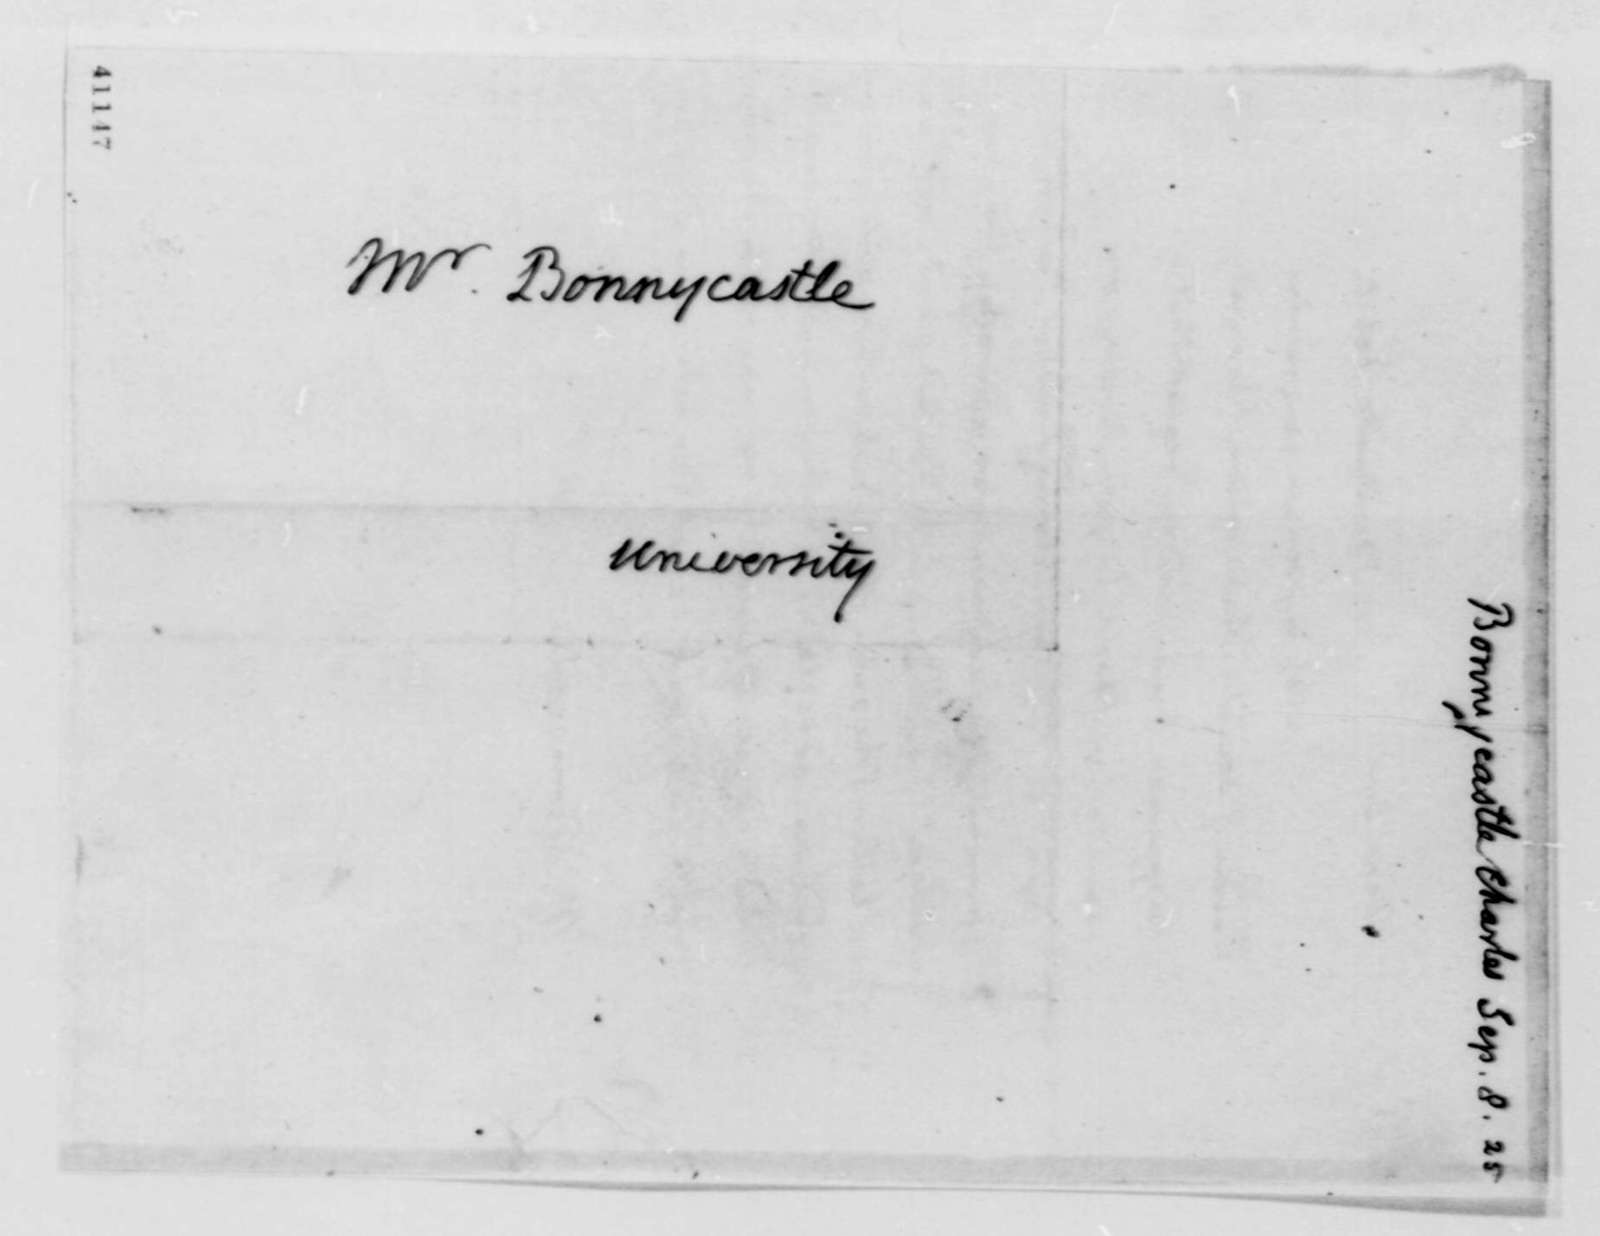 Thomas Jefferson to Charles Bonnycastle, September 8, 1825, with Reply